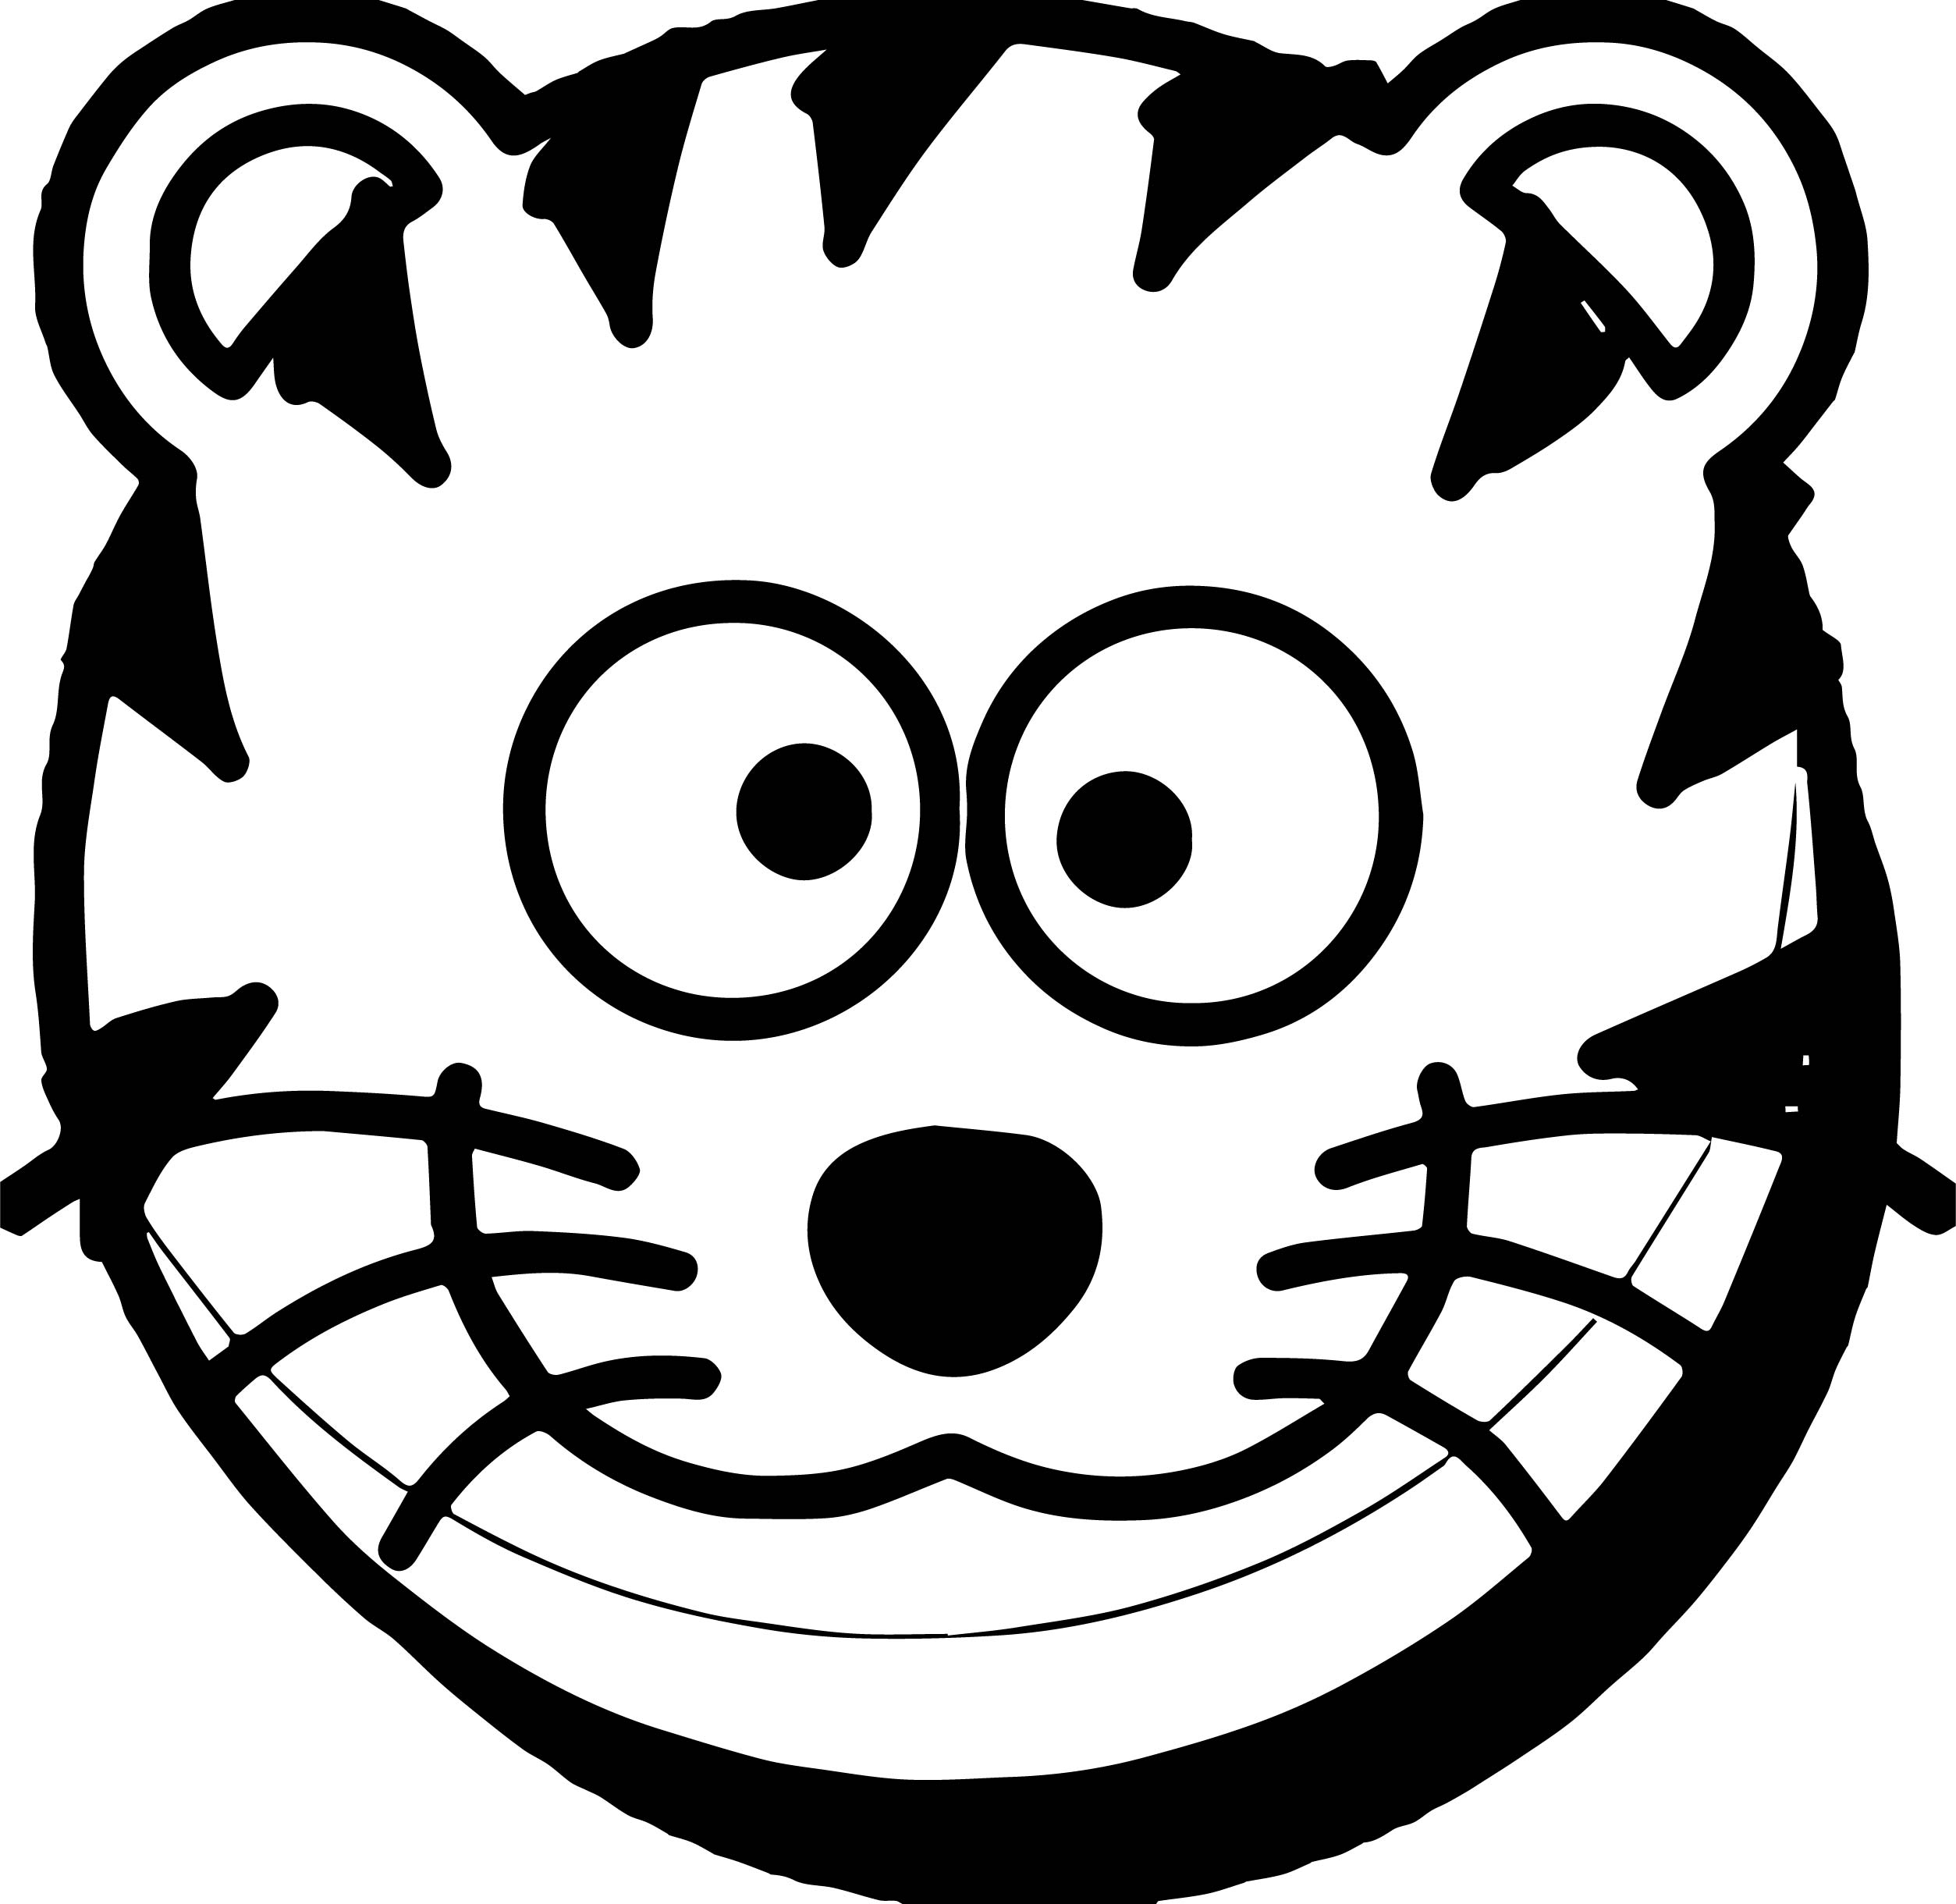 cat face coloring page animals coloring sheet cat face mask picture free printable cat page coloring face